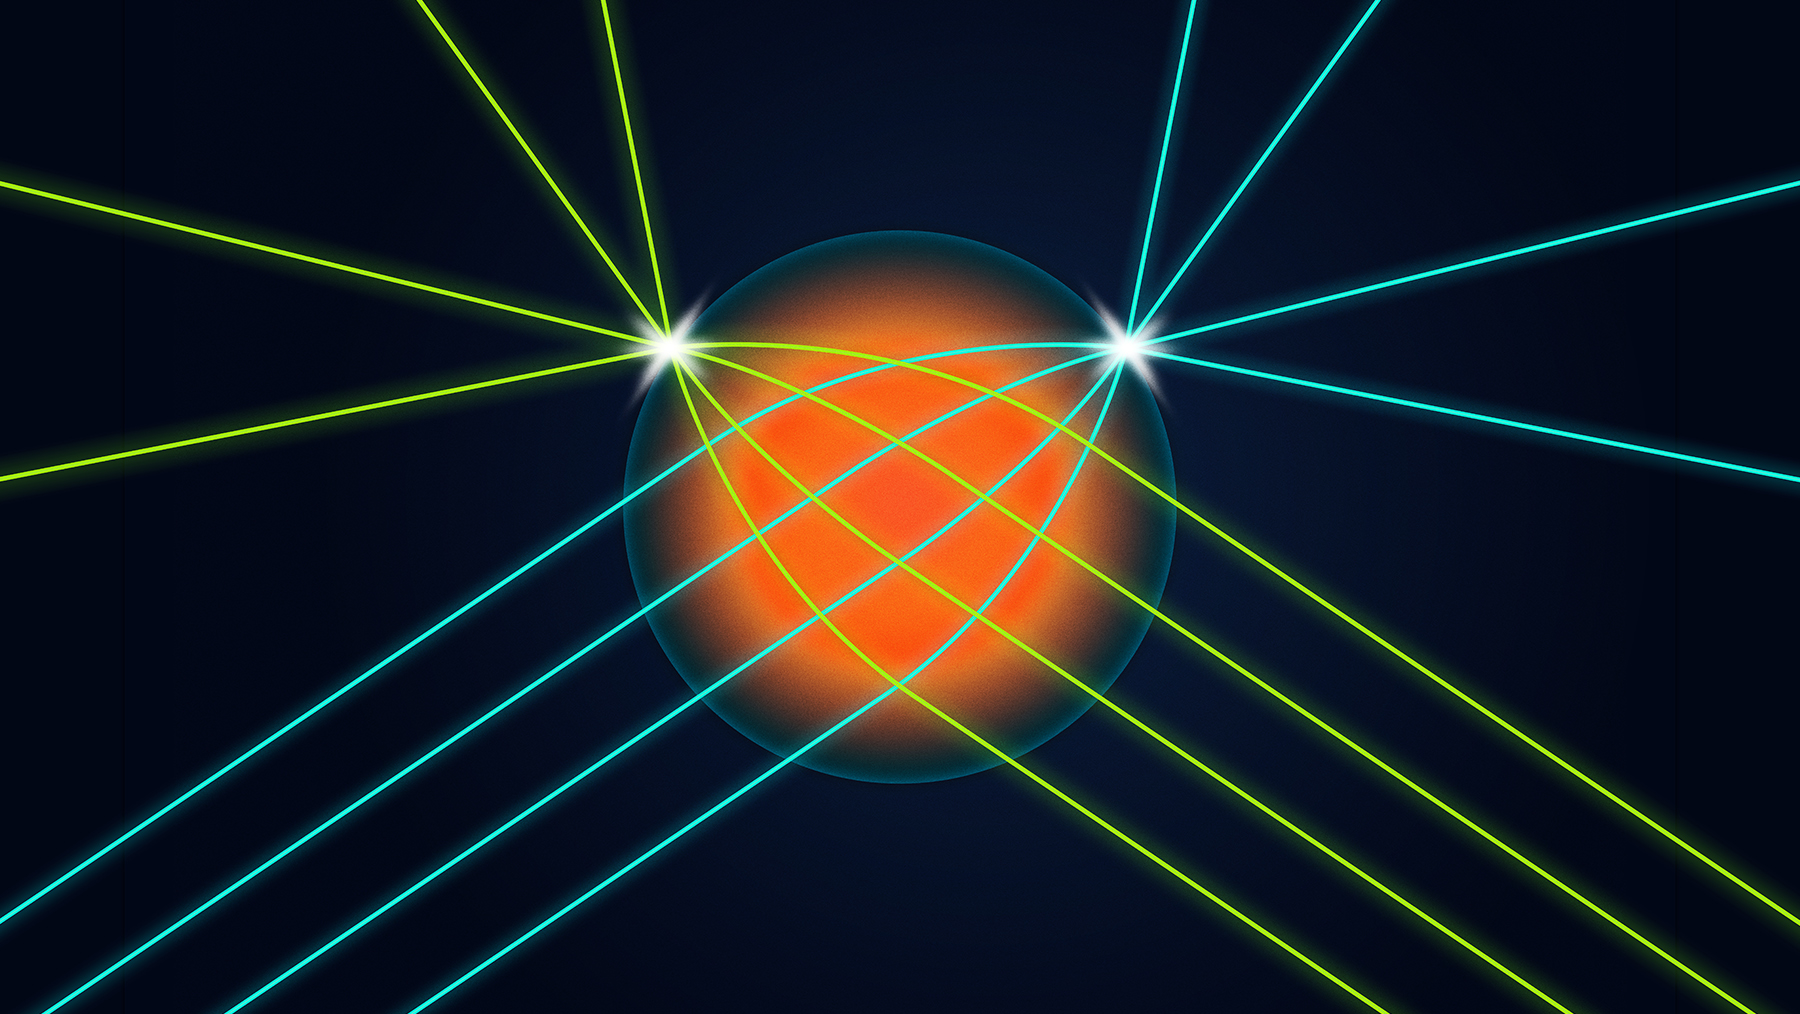 a spherical lens that allows light coming into the lens from any direction to be focused into a very small spot on the surface of the lens exactly opposite the input direction.  Graphic by Michael Vincent